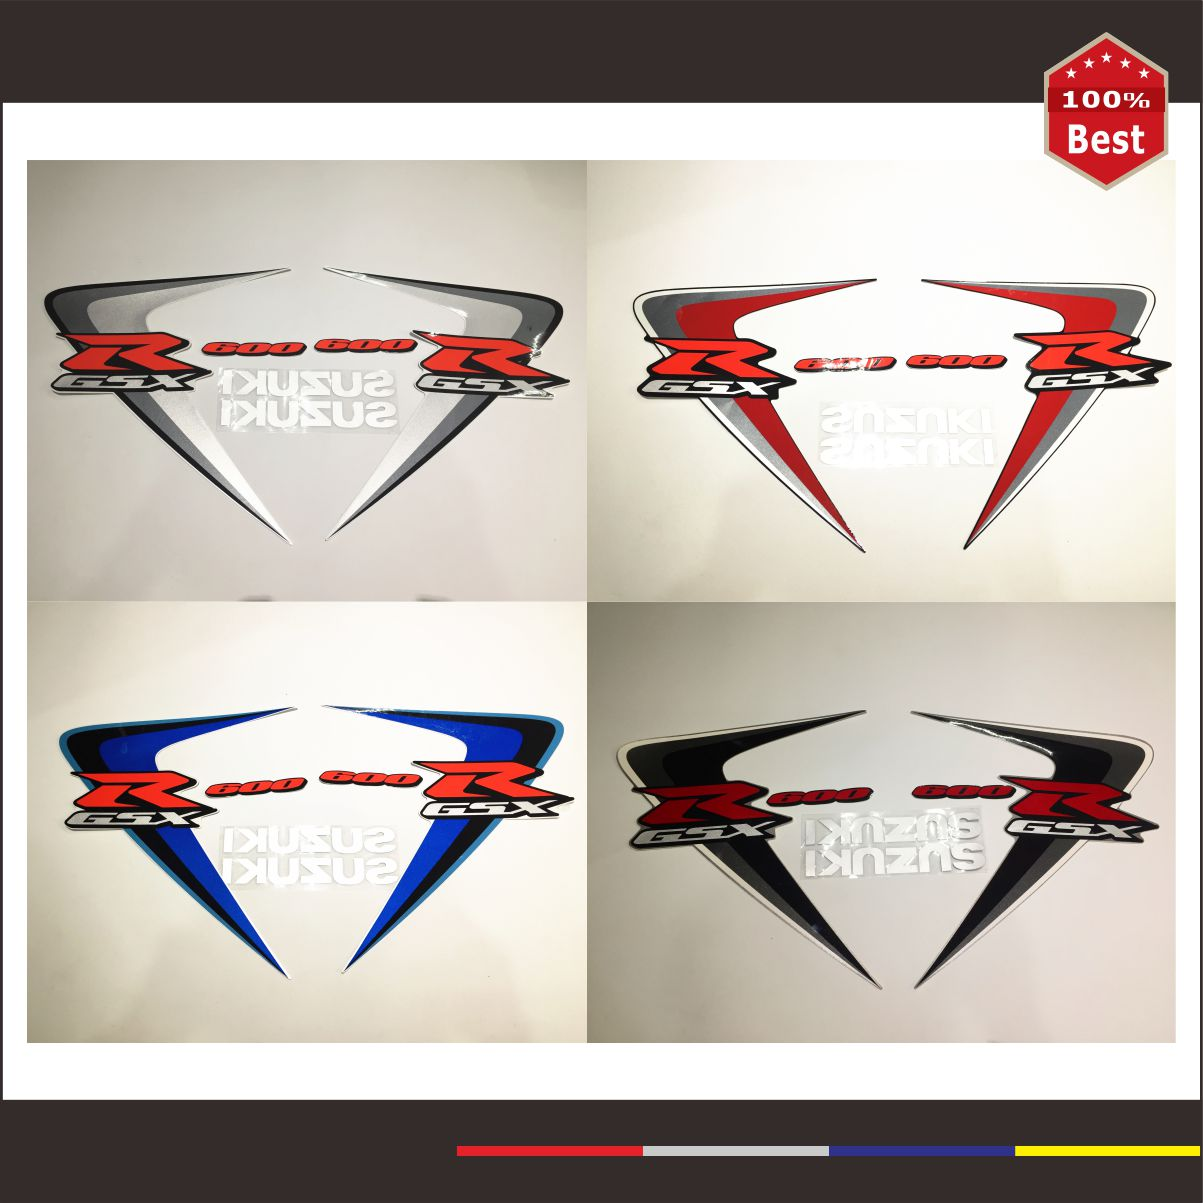 motorcycle stickers and decals DIY For Suzuki GSXR GSX-R GSX R 600 750 K6 MOTO stickers a decal stickers 4 colors to choose from k r k naidu a v ramana and r veeraraghavaiah common vetch management in rice fallow blackgram